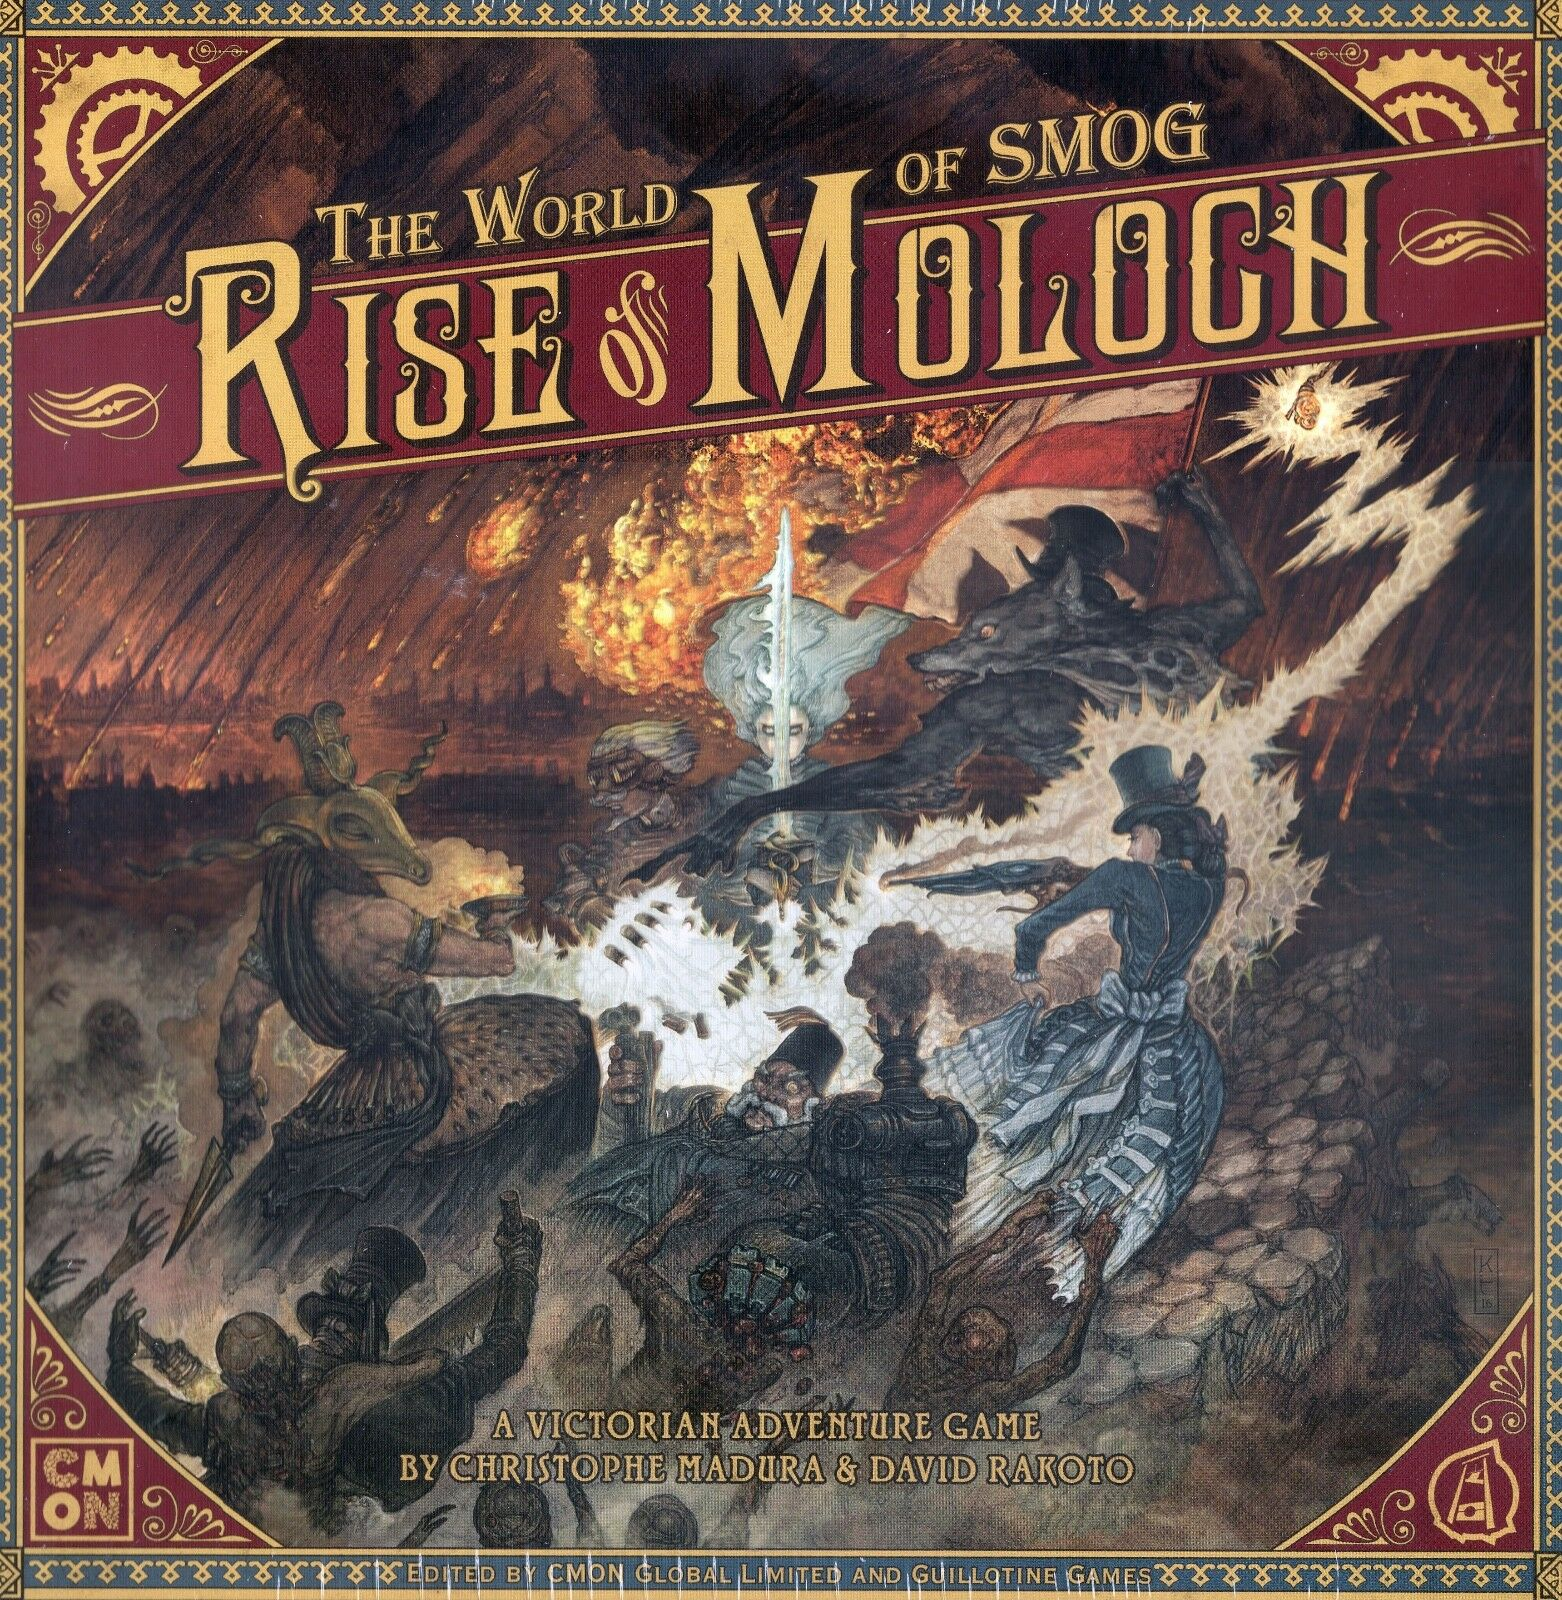 CMON The World of SMOG Rise of Moloch Core game New shrinkwrap